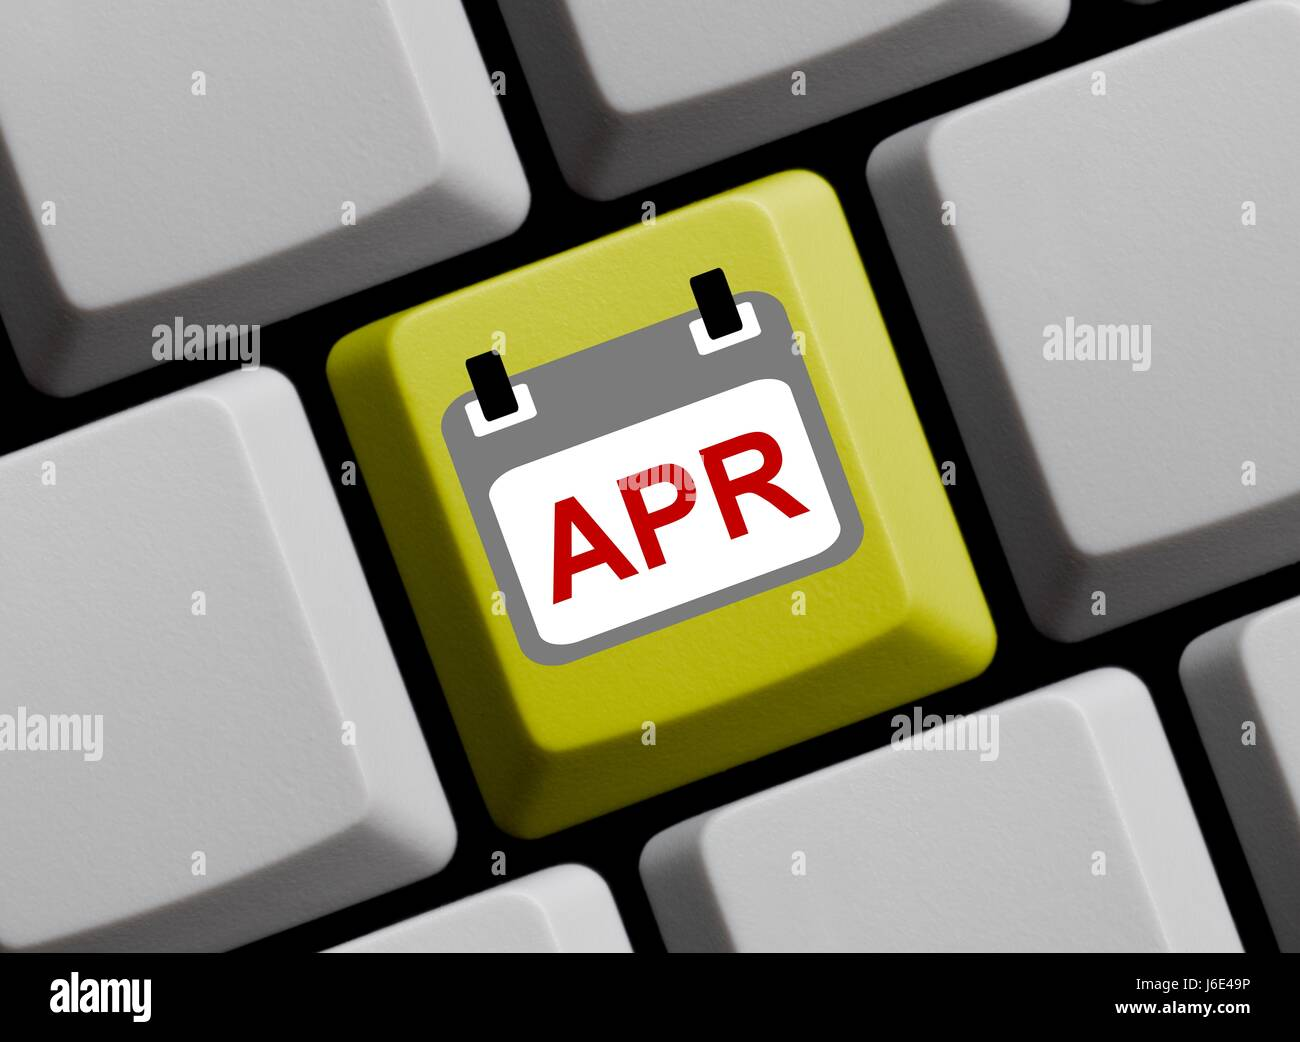 the month of april - kalenderblatt online - Stock Image